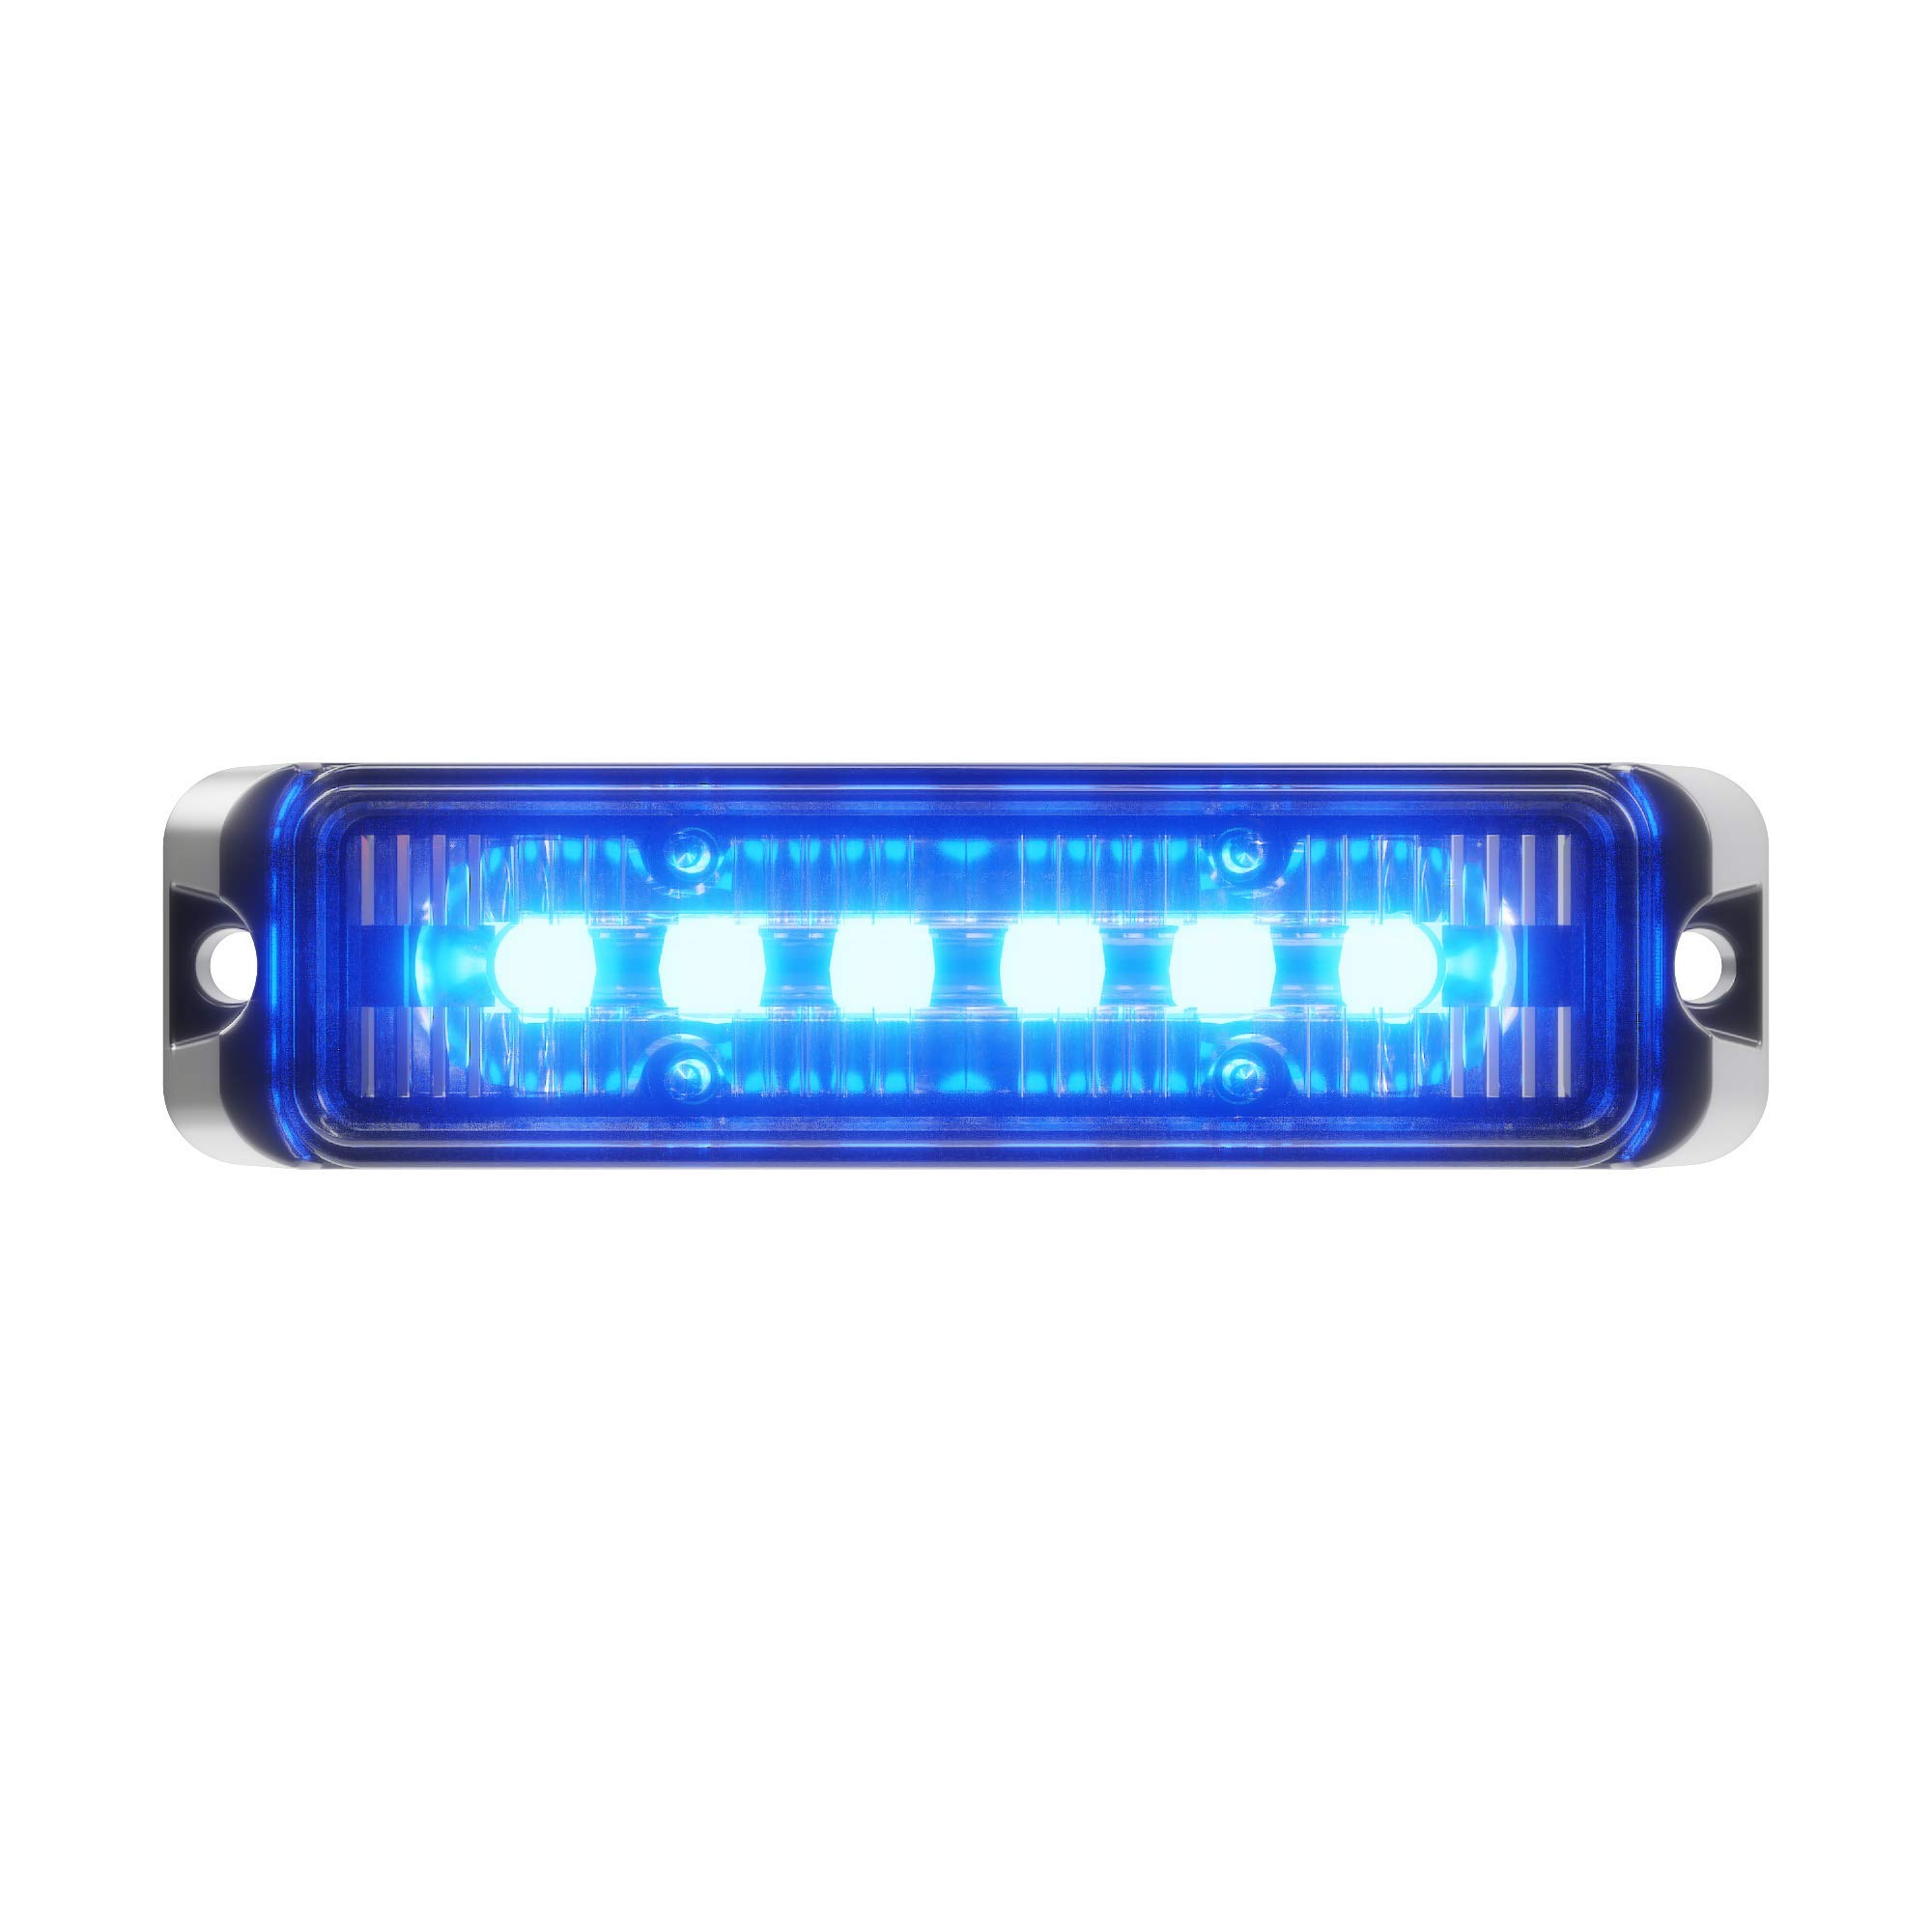 Abrams Flex Series (Blue/Blue) 18W - 6 LED Police & EMS Vehicle Truck LED Grille Light Head Surface Mount Strobe Warning Light